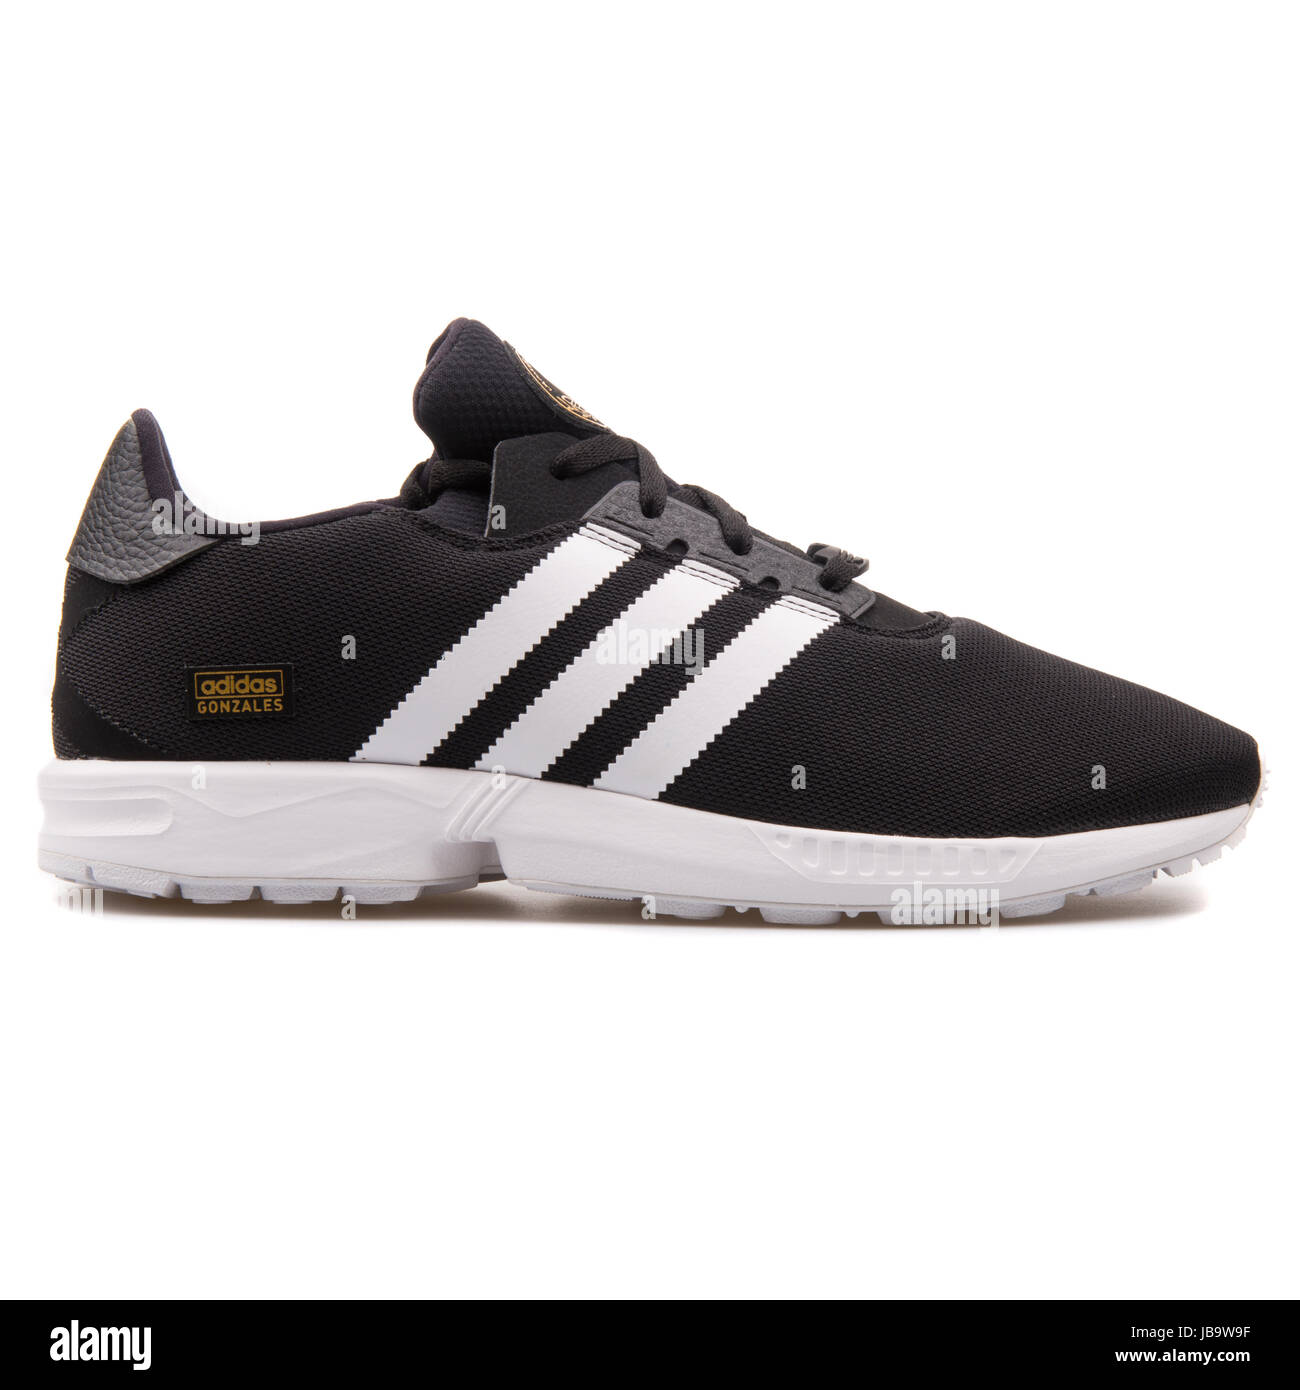 new concept 7db27 11f37 Adidas ZX Gonz Black Men s Running Shoes - D68814 - Stock Image